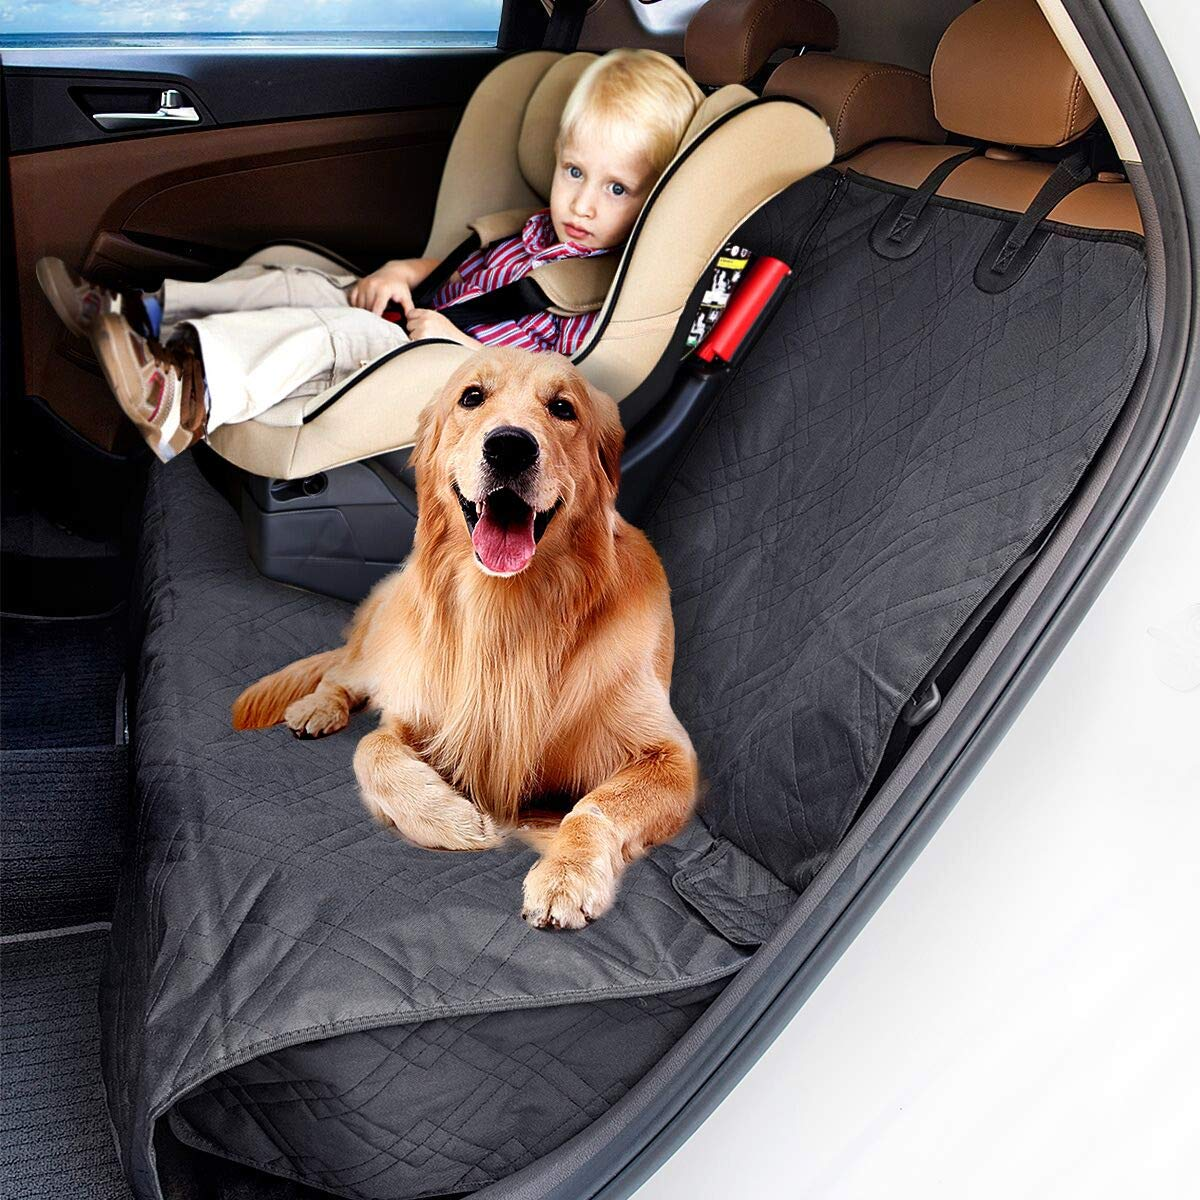 MATCC Dog Car Seat Covers Waterproof Nonslip Back Seat Cover For Dogs Pets Kids With Side Flaps and Zipper Pet Seat Cover for Cars Trucks and SUVs